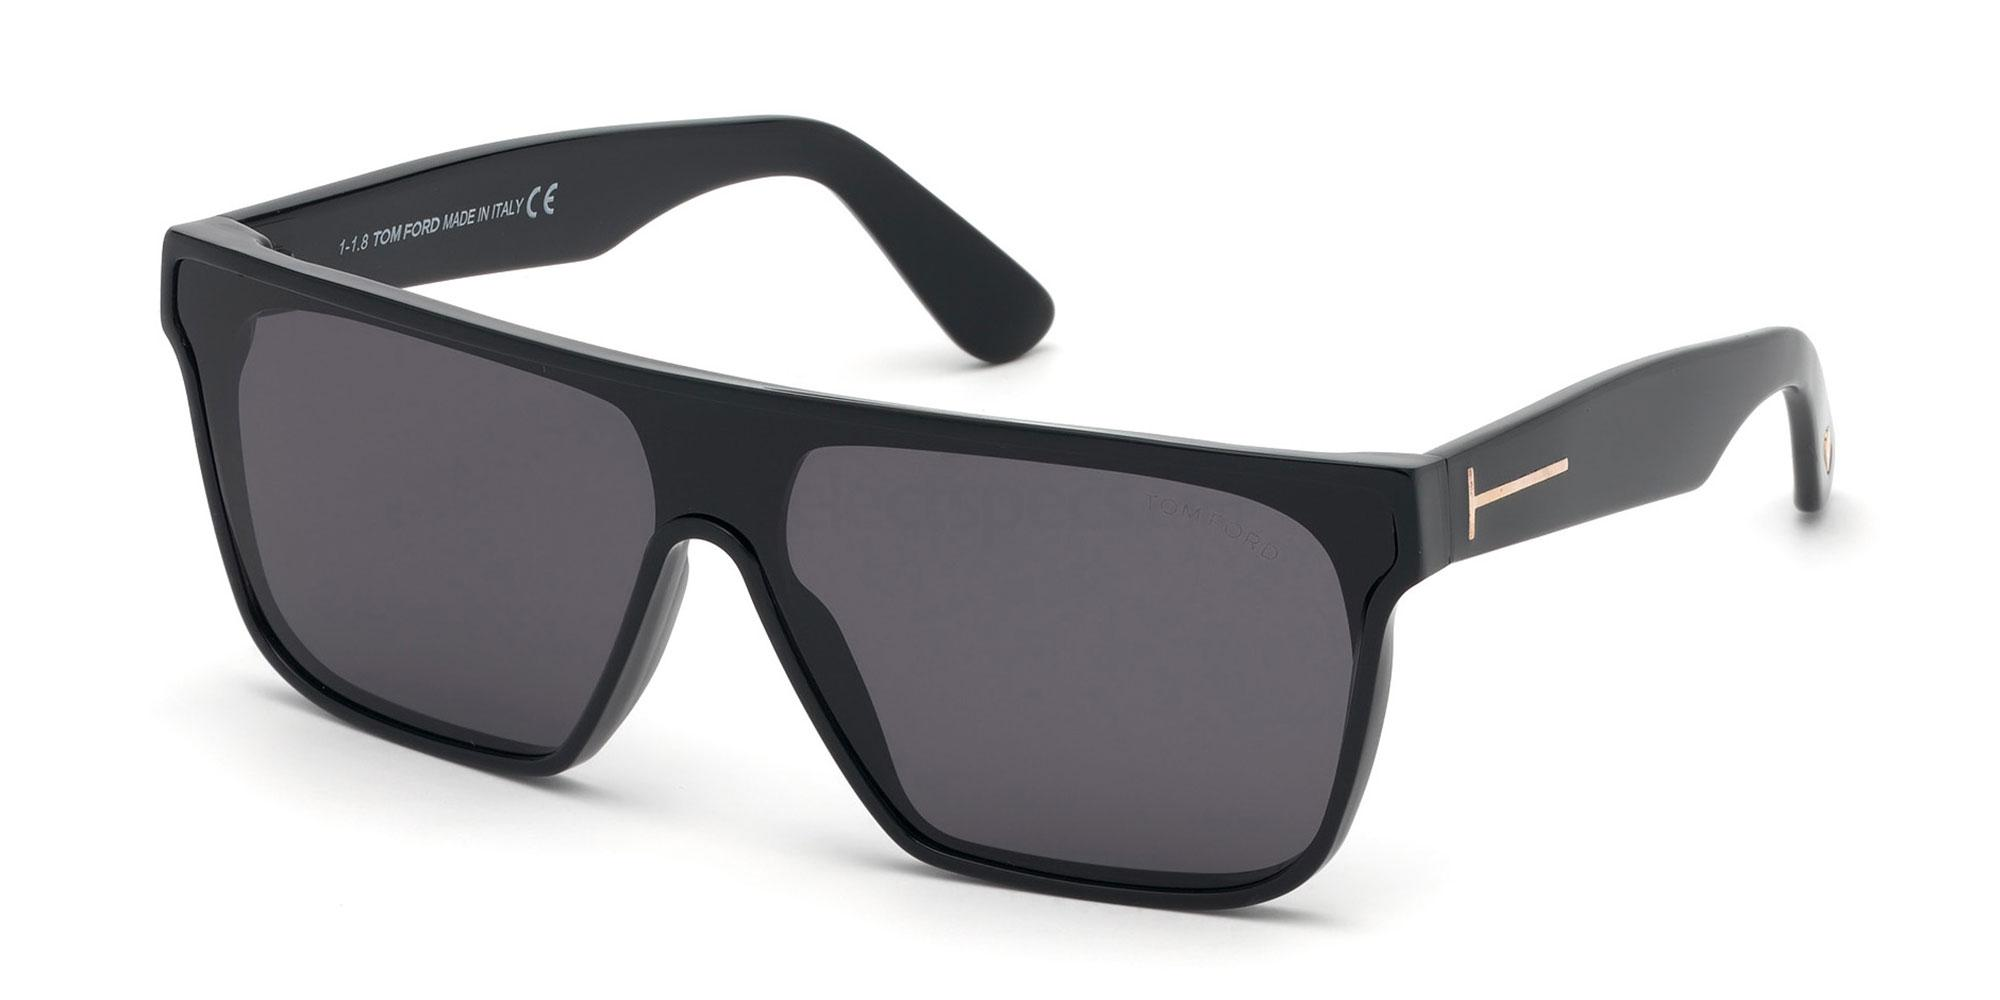 01A FT0709 Sunglasses, Tom Ford